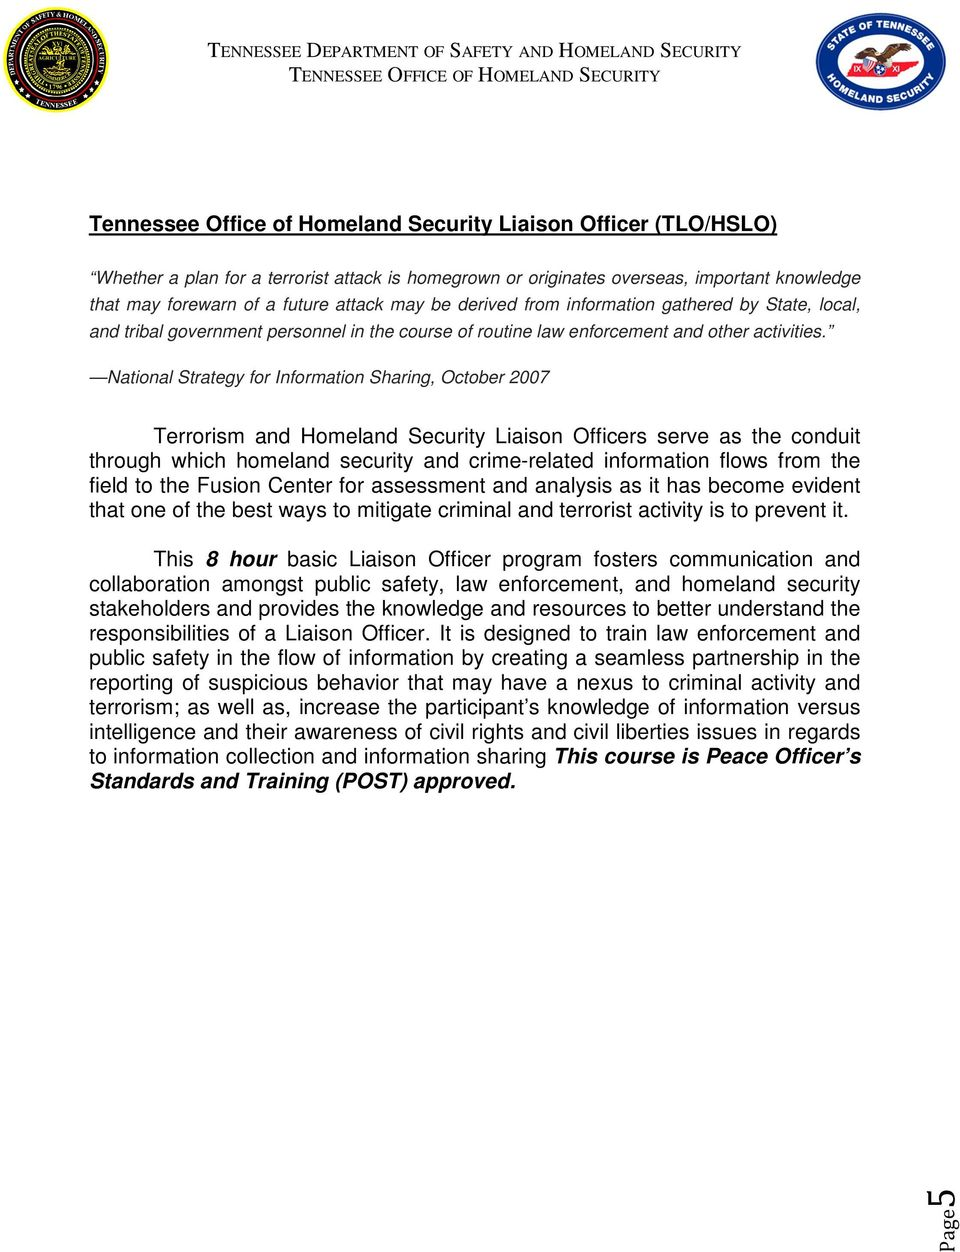 National Strategy for Information Sharing, October 2007 Terrorism and Homeland Security Liaison Officers serve as the conduit through which homeland security and crime-related information flows from